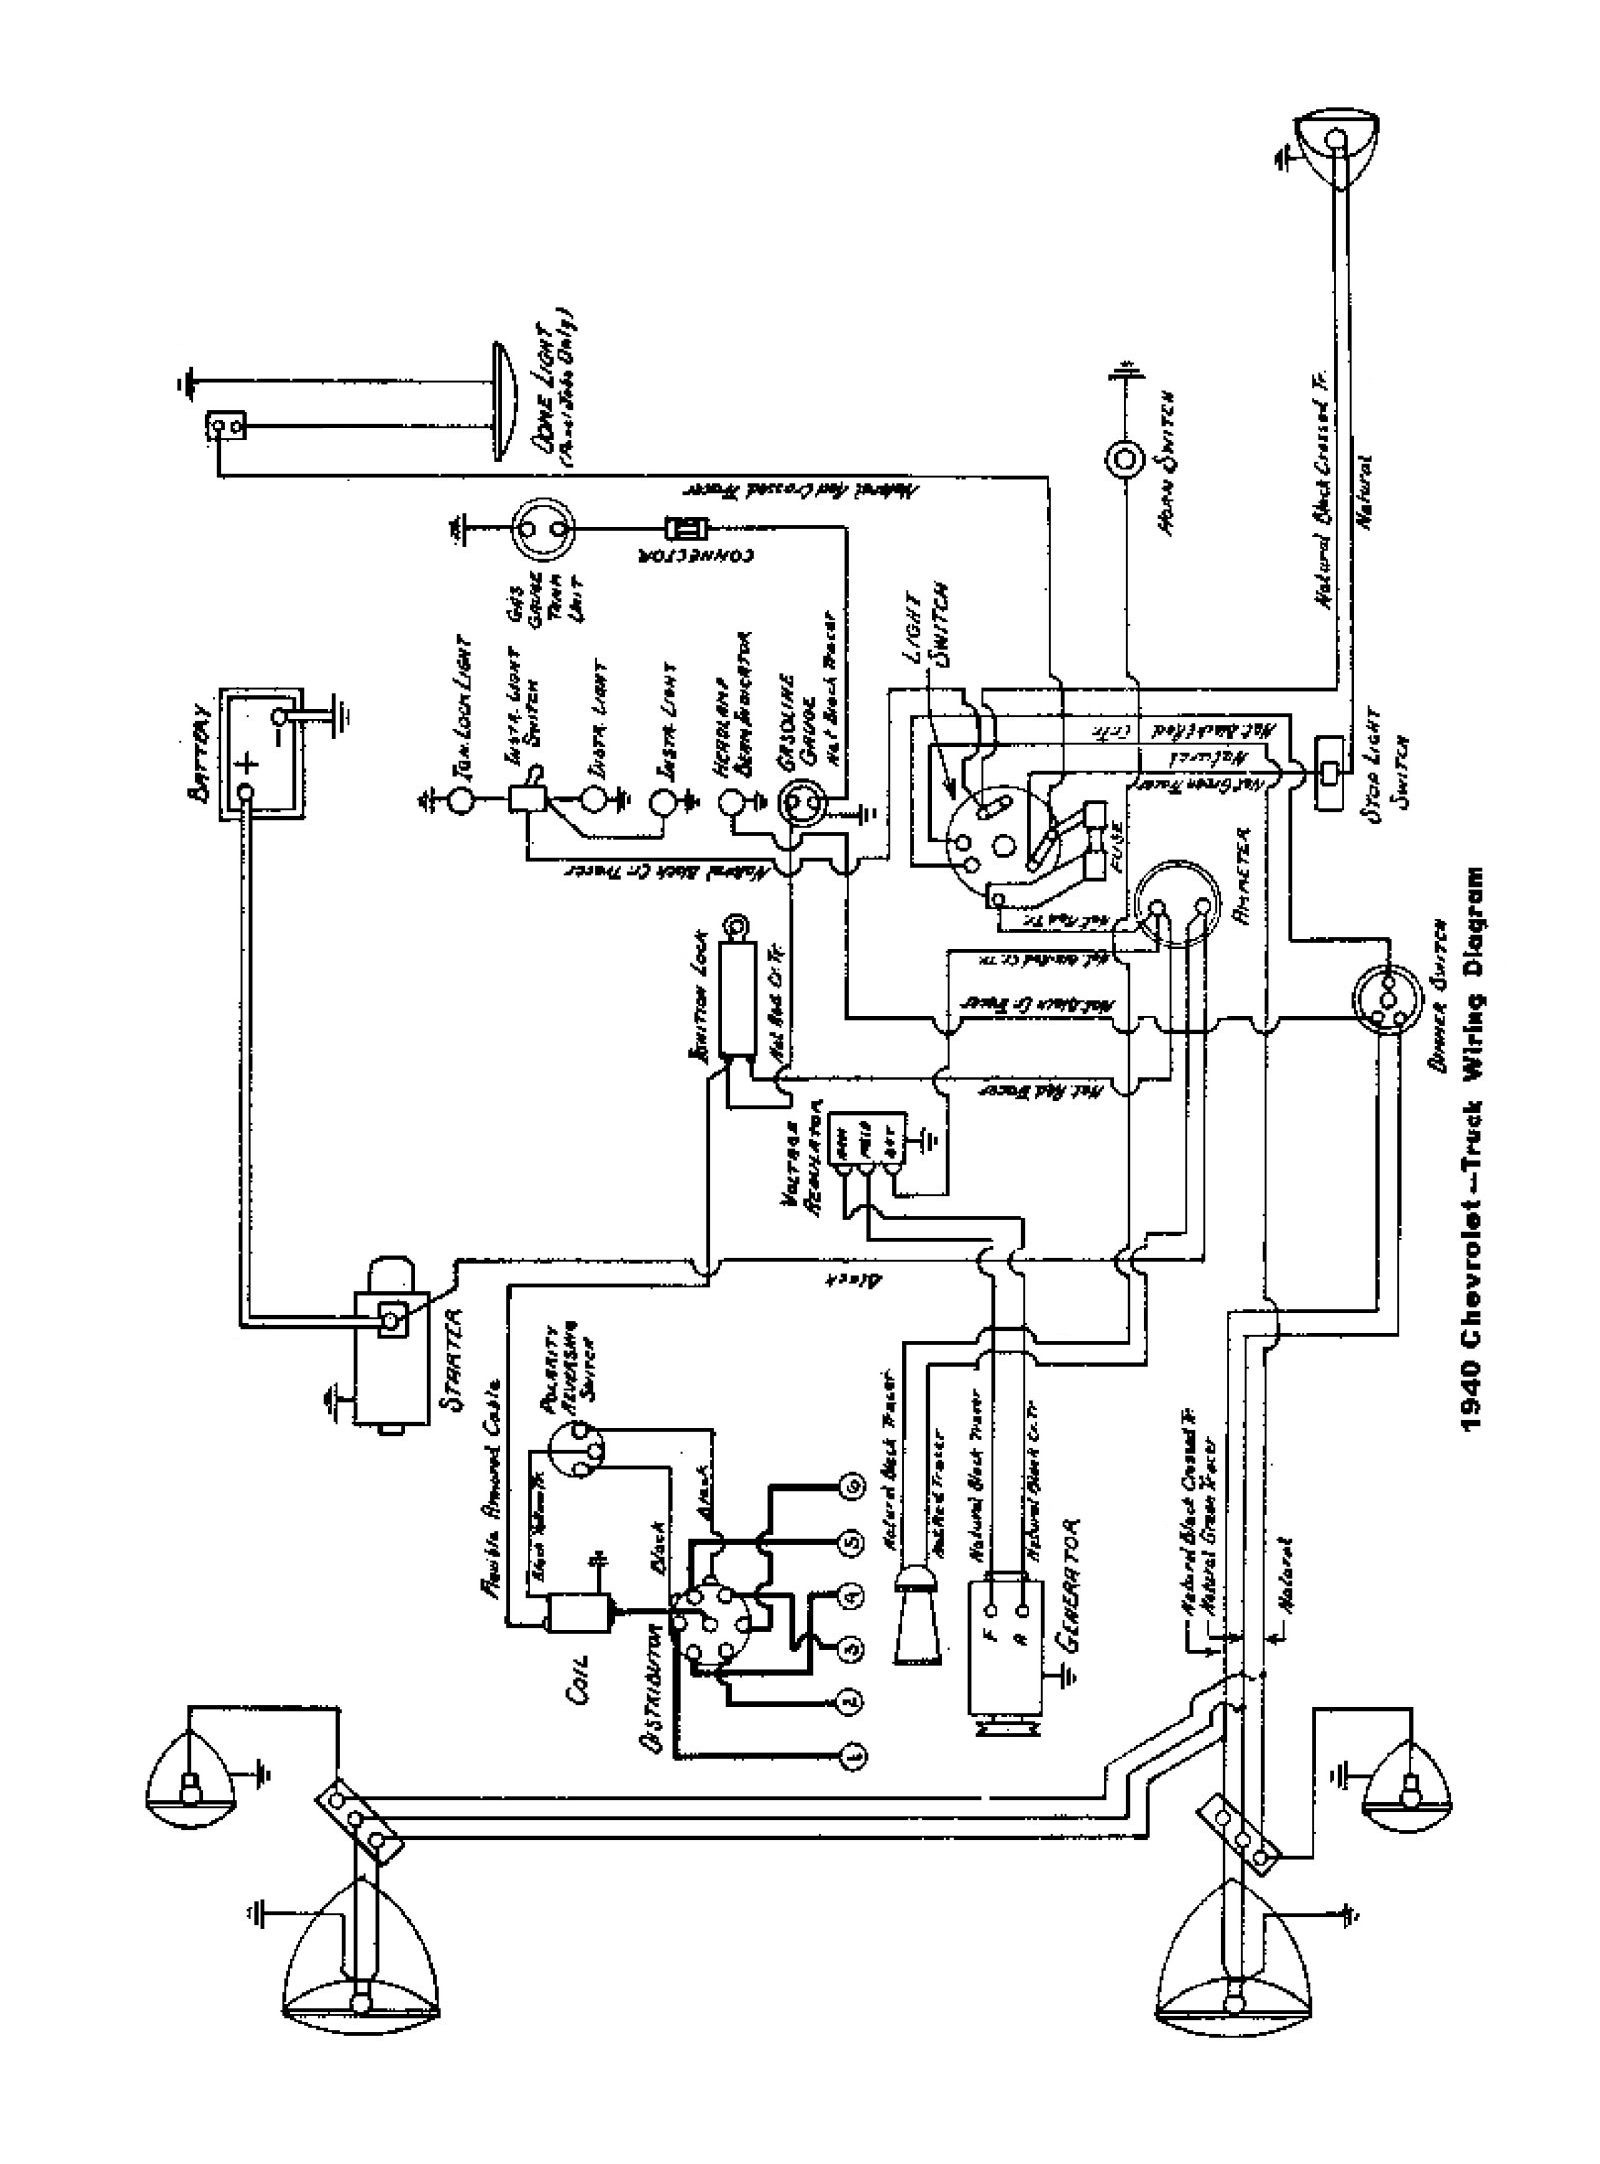 [DIAGRAM] 1948 Chrysler Windsor Engine Diagram FULL